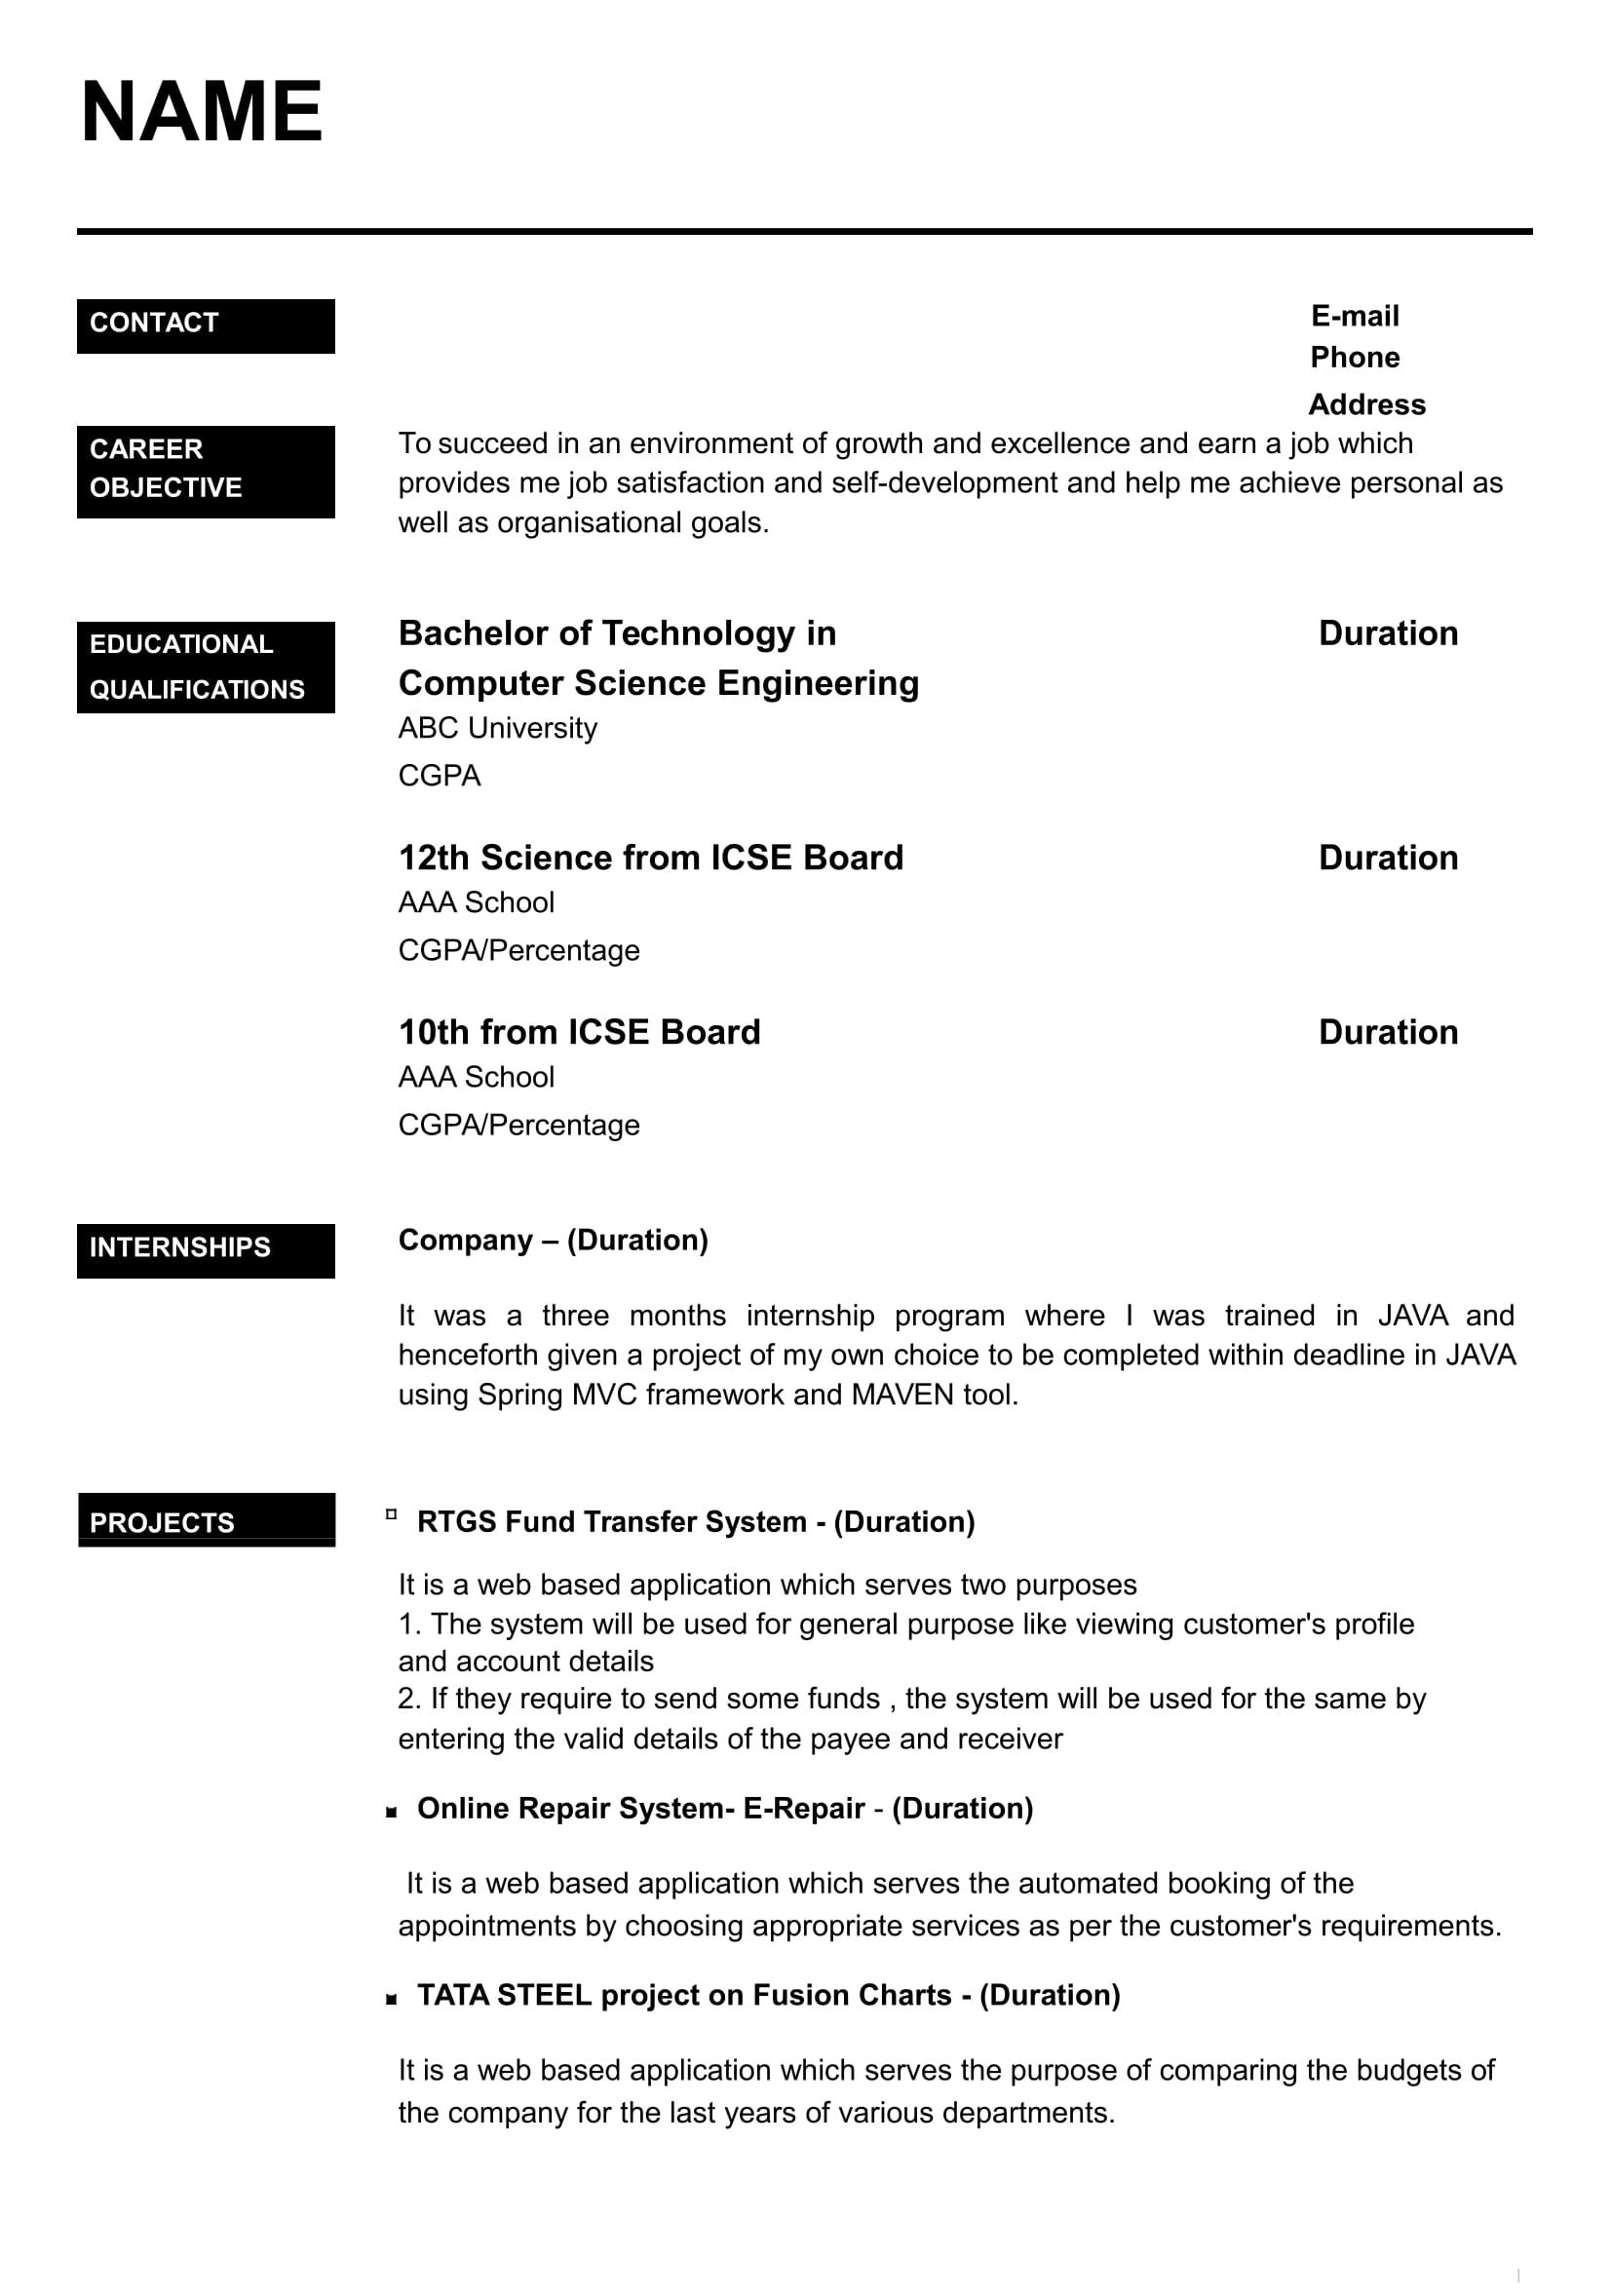 resume templates for freshers free word format awesome fo best simple job sample someone Resume Download Job Resume Format For Freshers